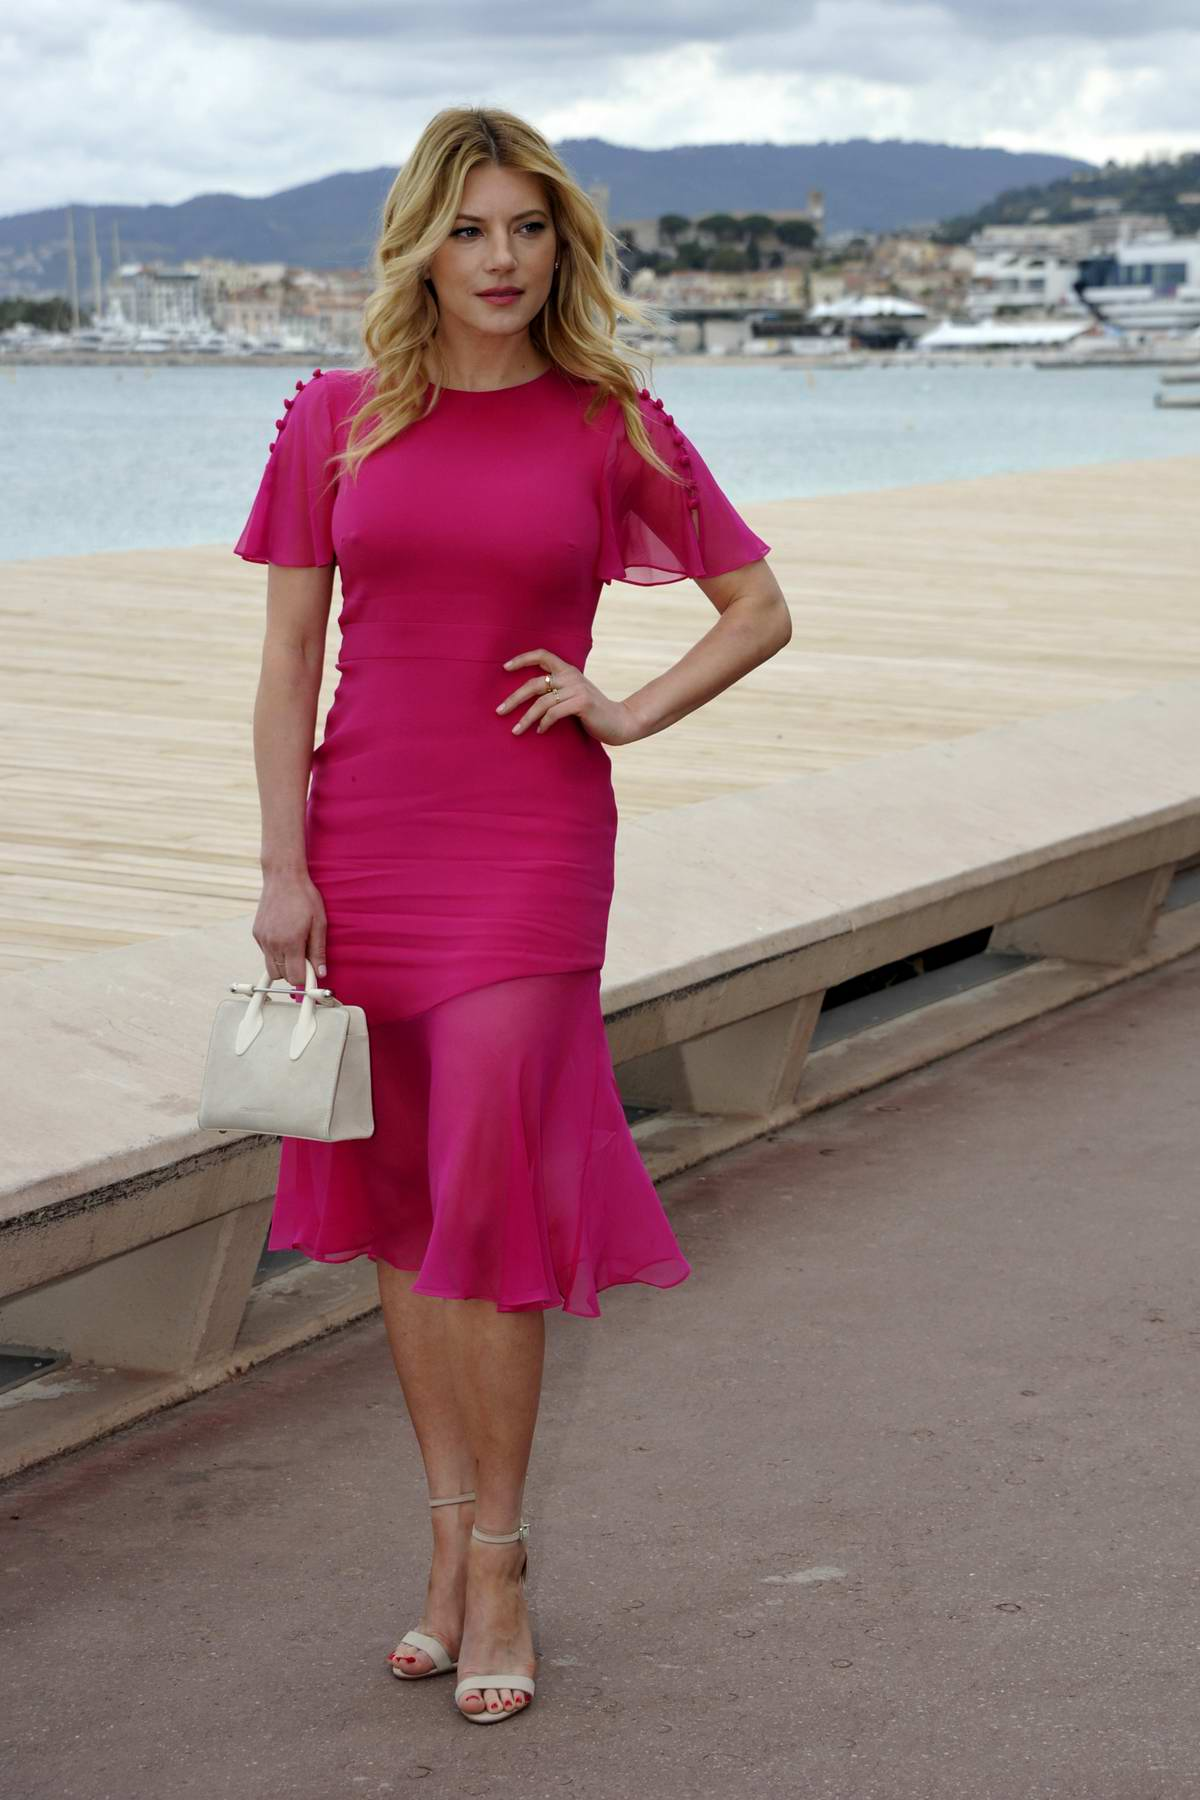 Katheryn Winnick at the 2nd Canneseries International Series Festival, Day Two in Cannes, France